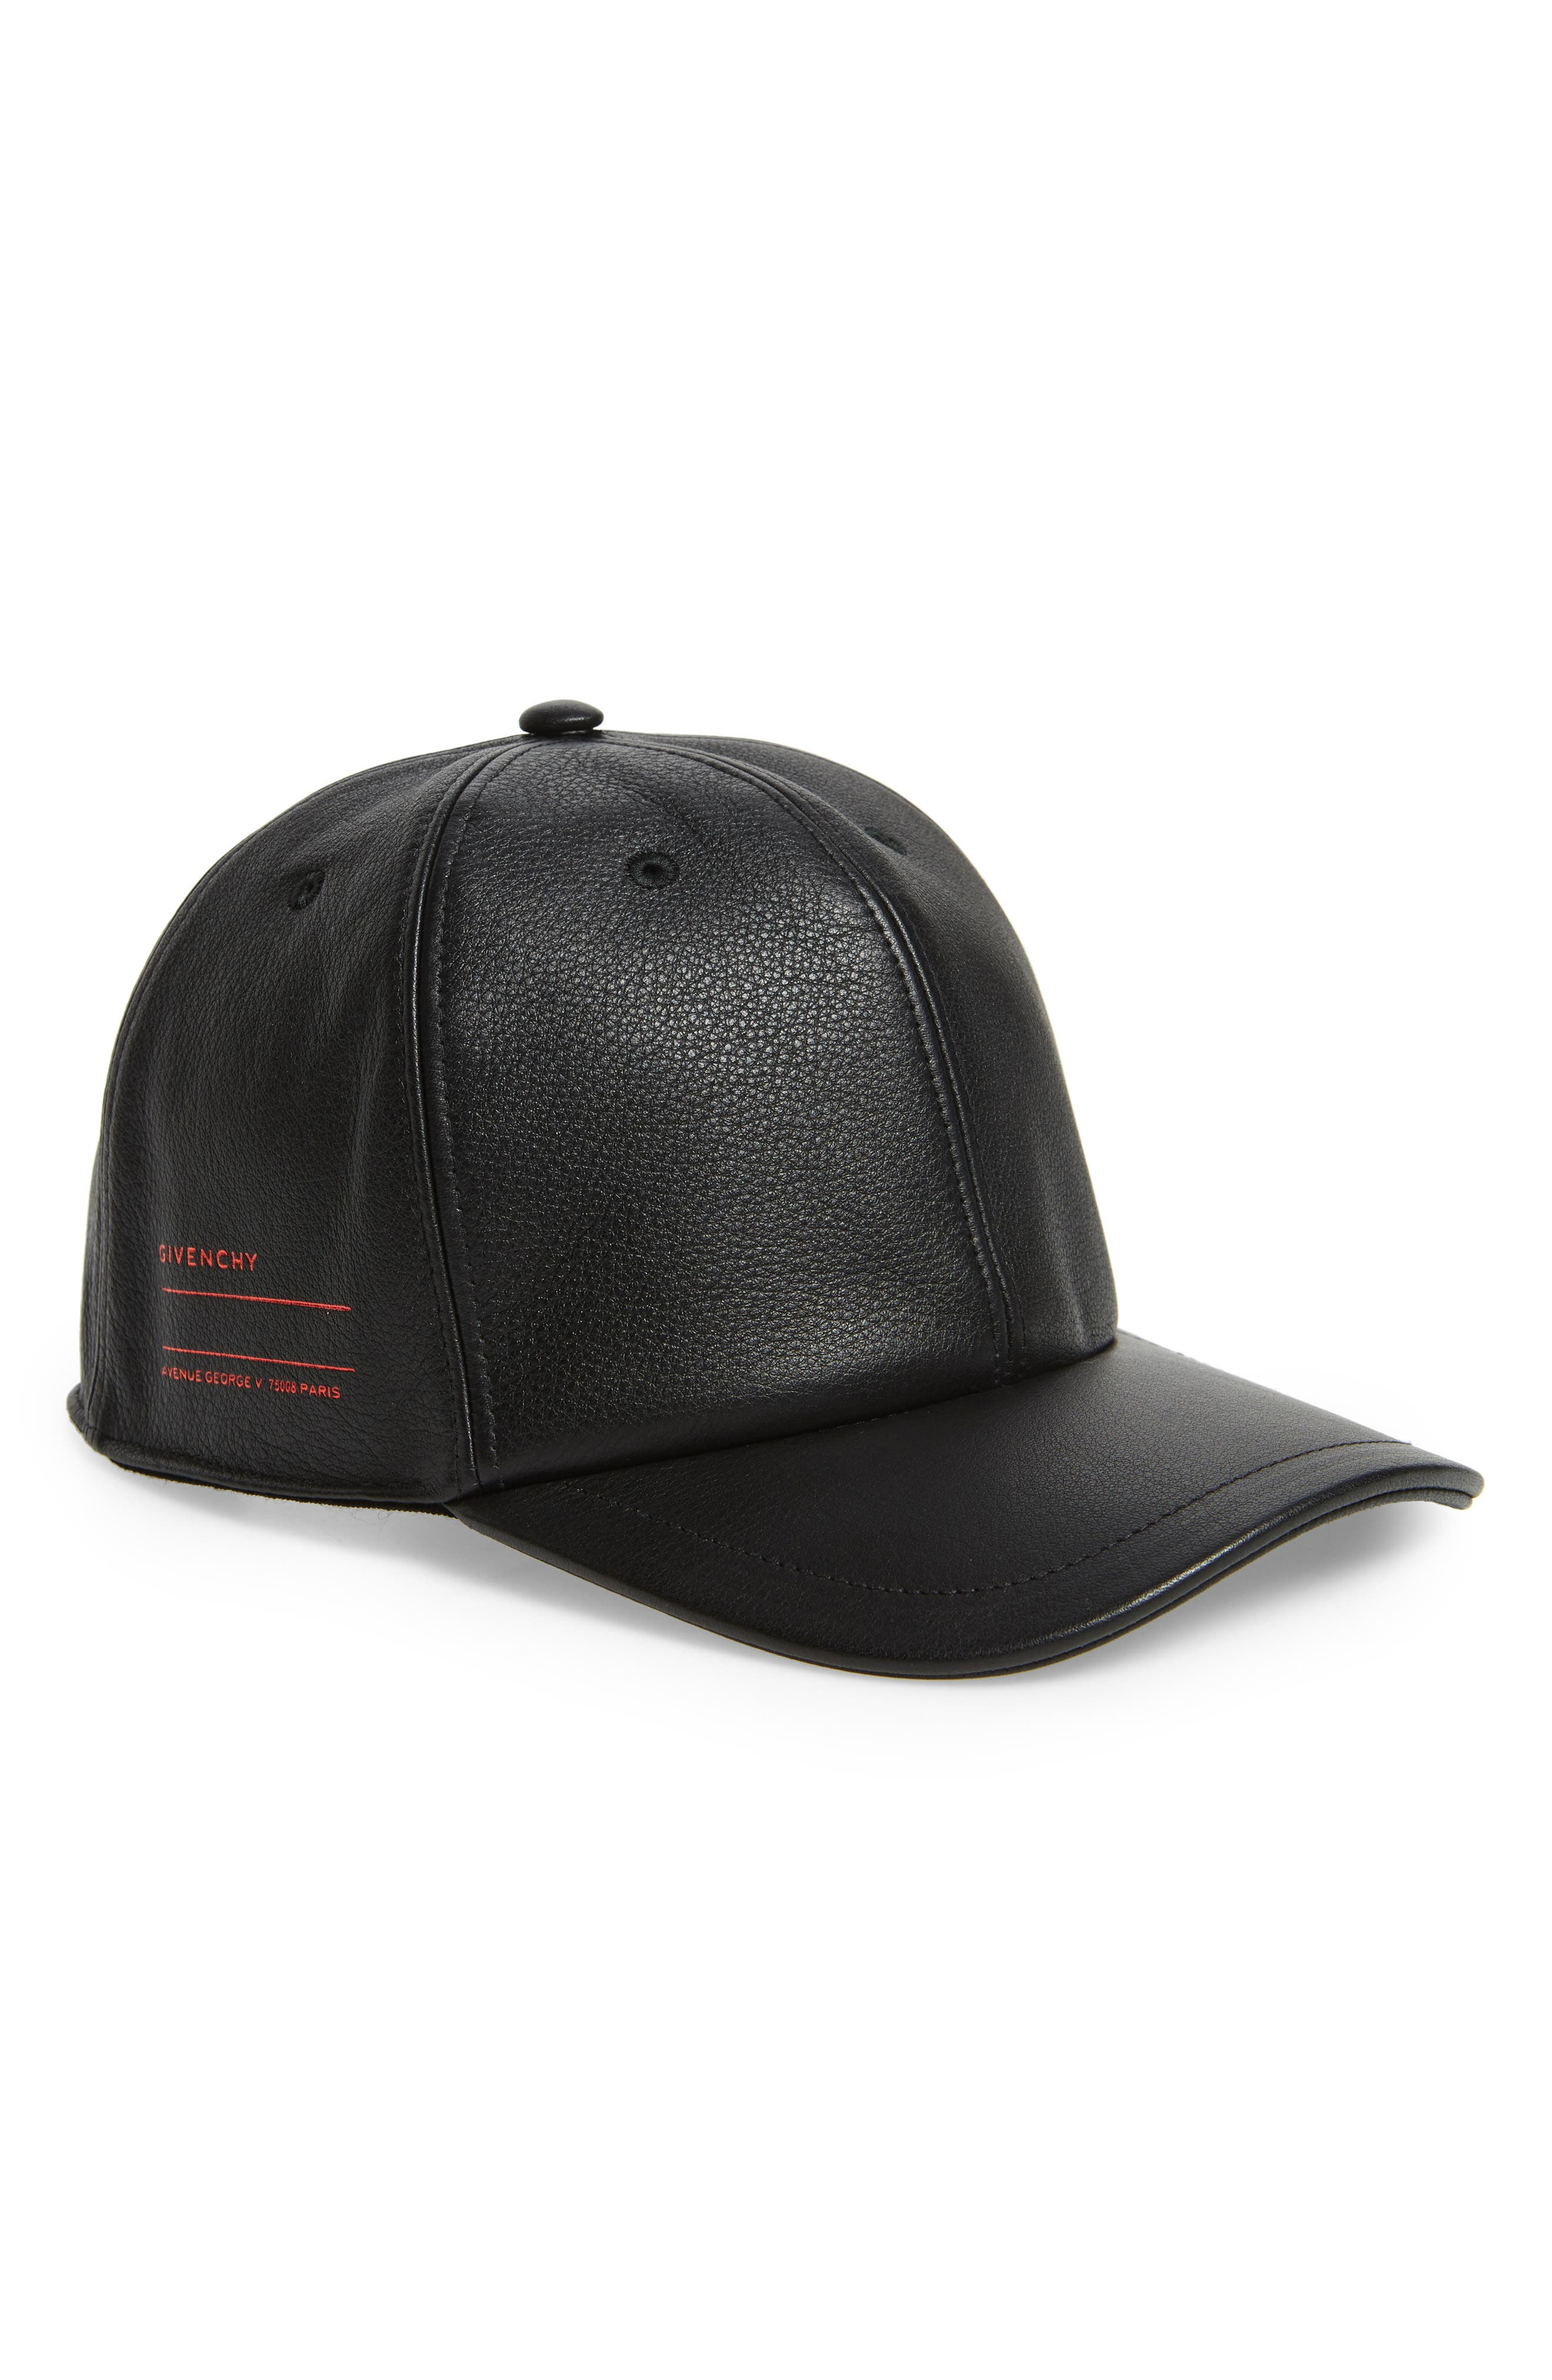 GIVENCHY Leather Ball Cap, Main, color, 005